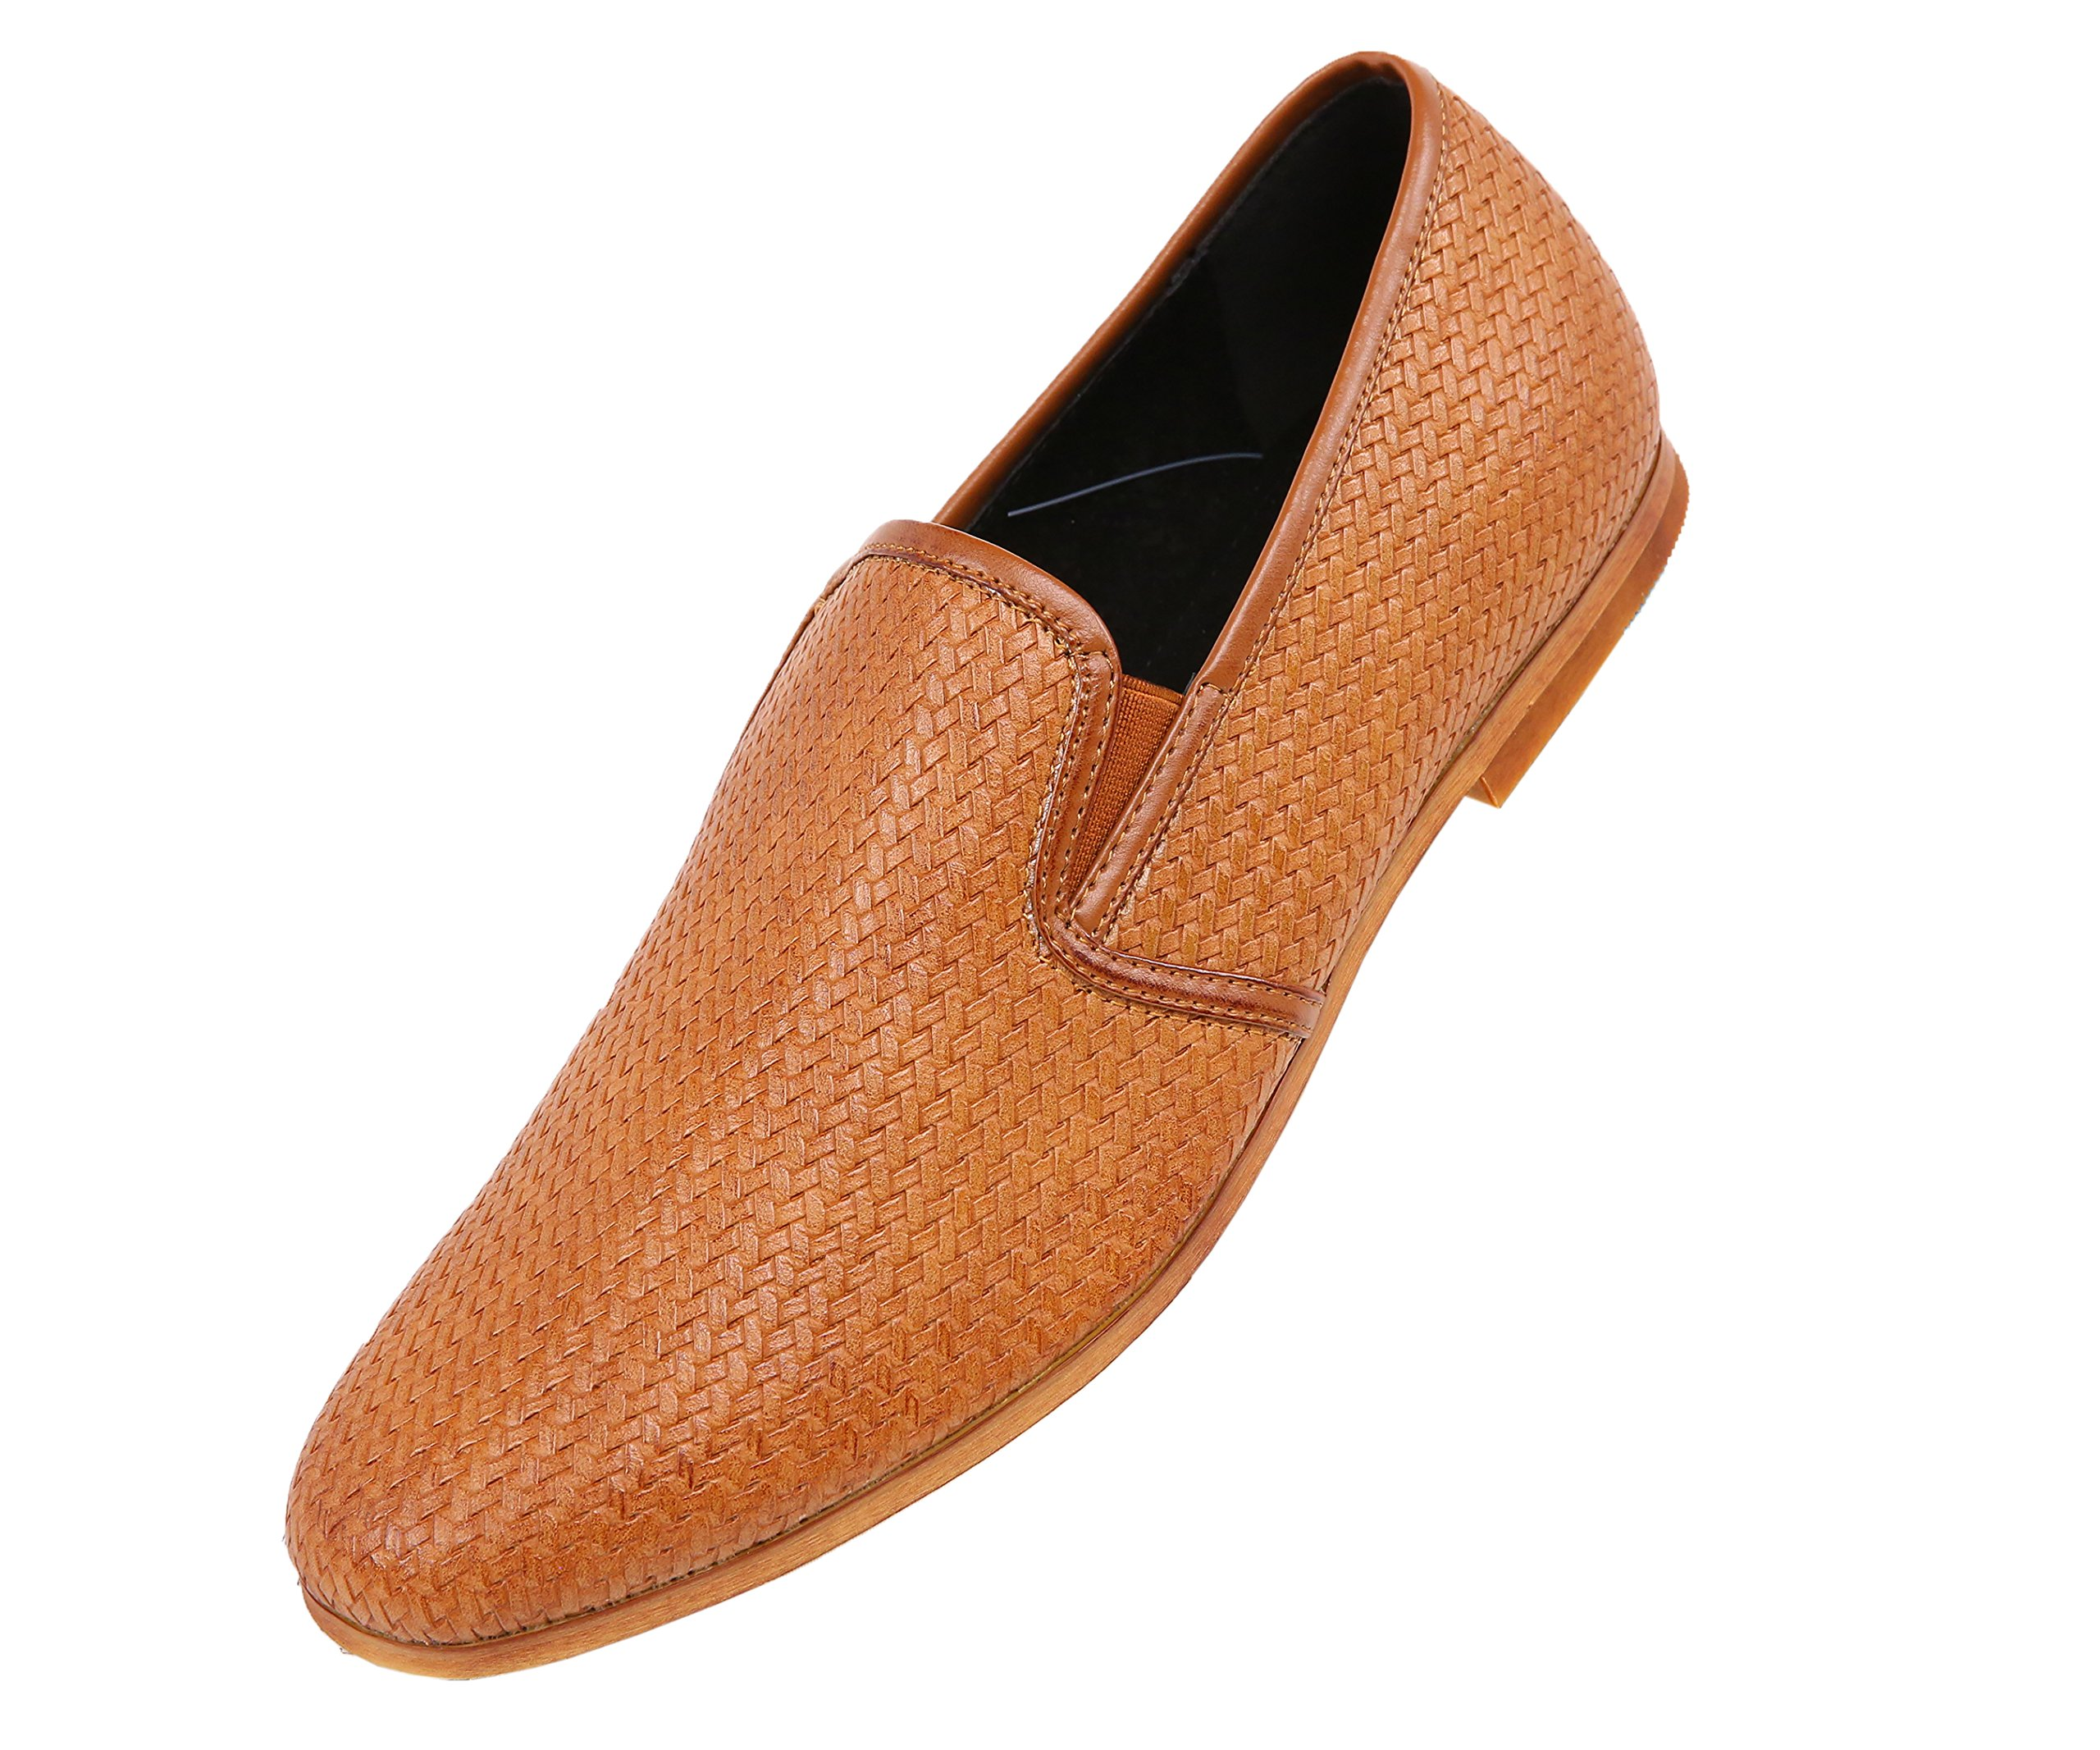 Amali Mens Dress Casual Loafers in Woven Embroidered Designs Woodlike Sole Styles Trey, Trap, Harmon